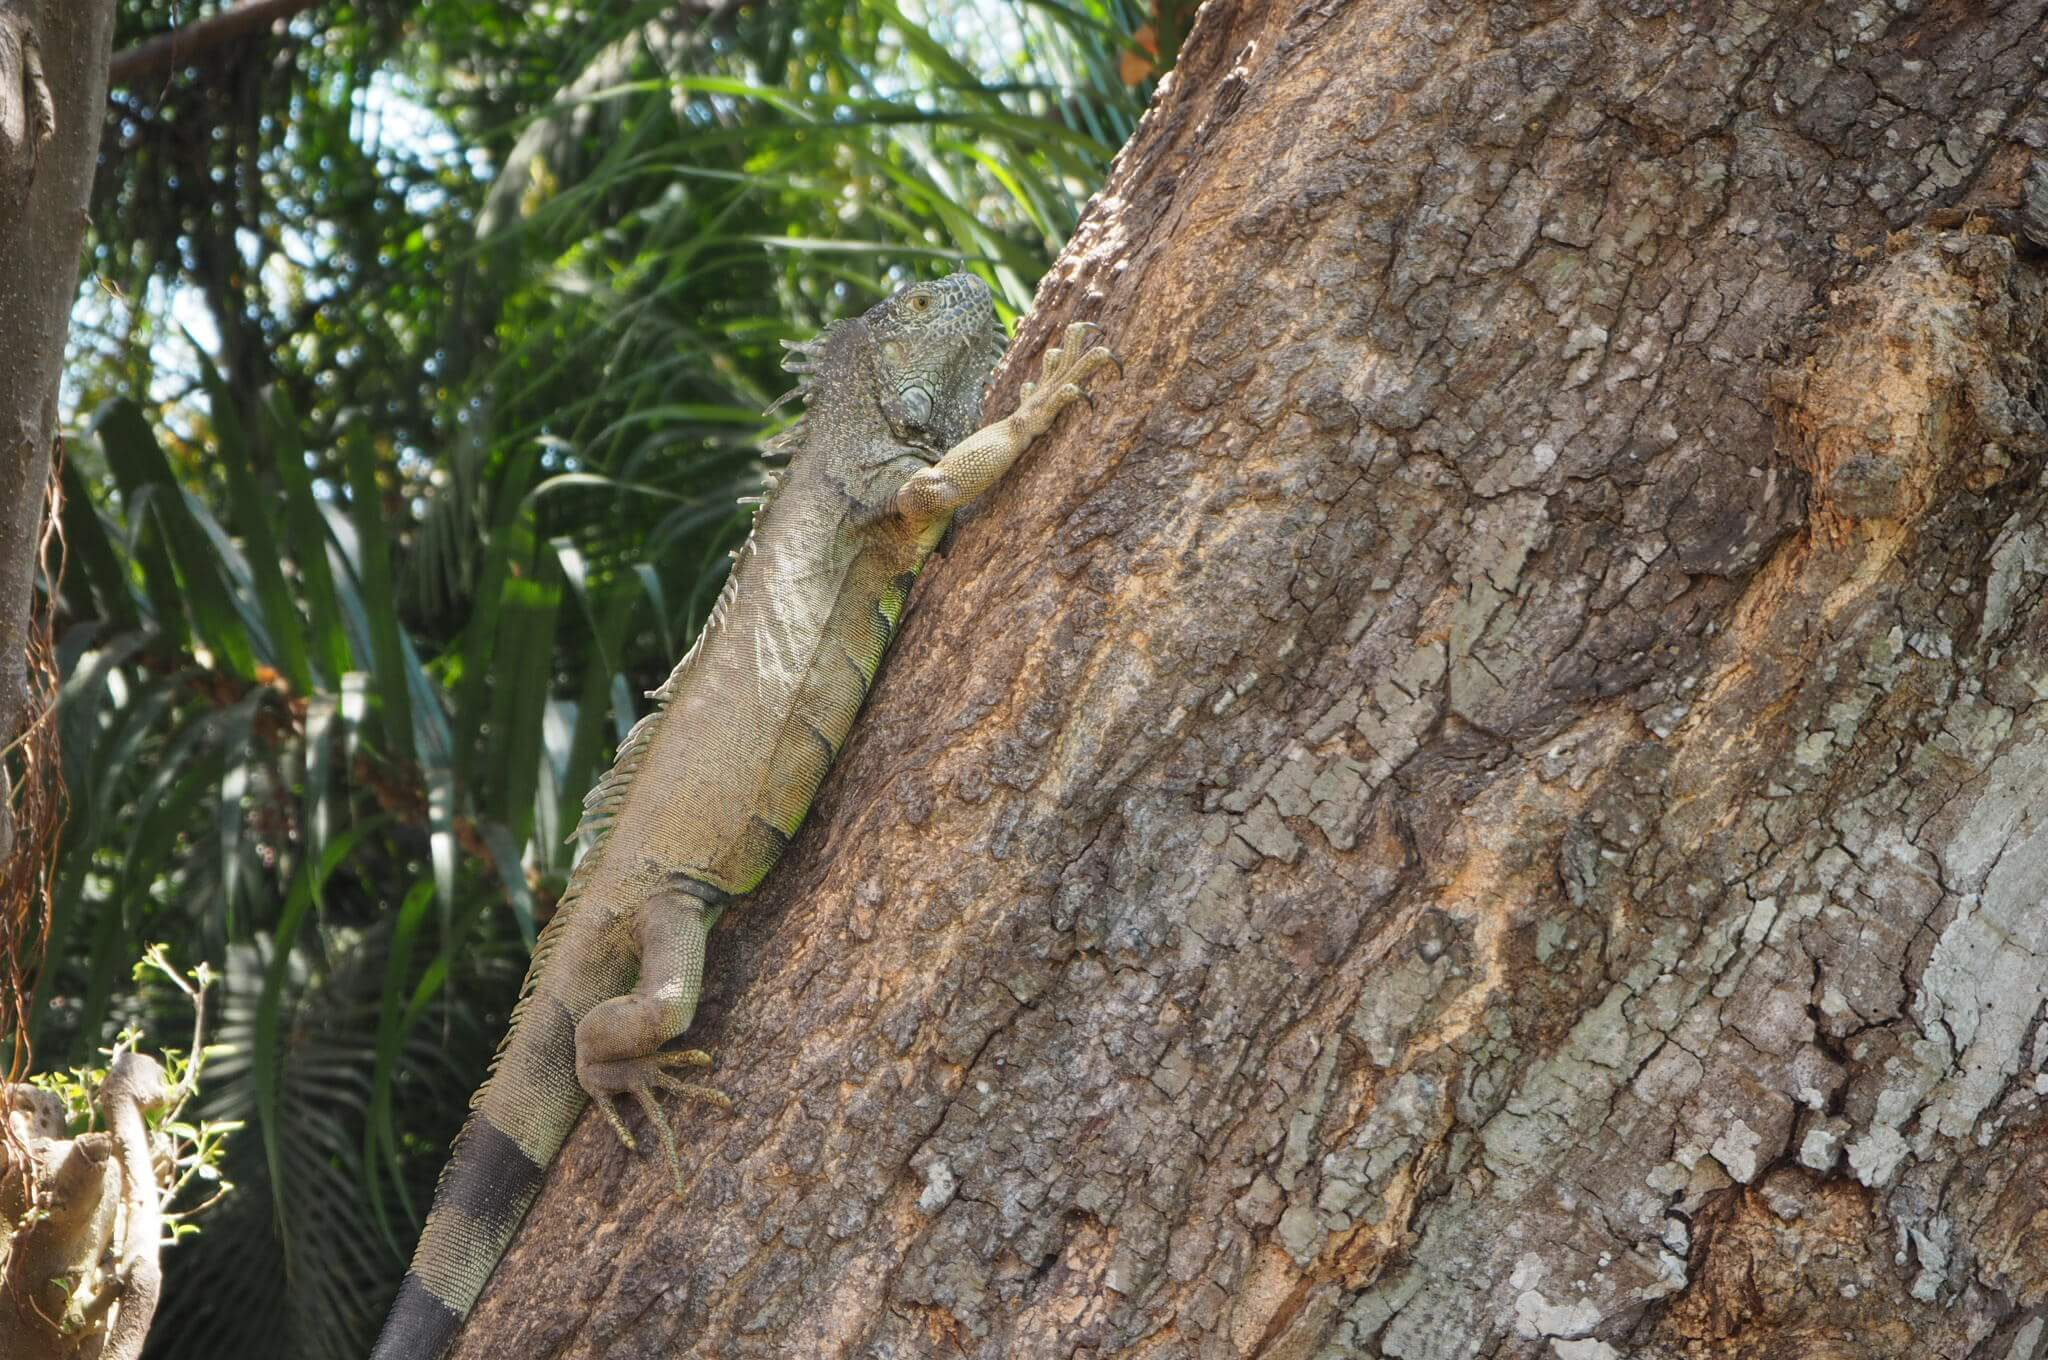 iguanas up a free in the hotel grounds